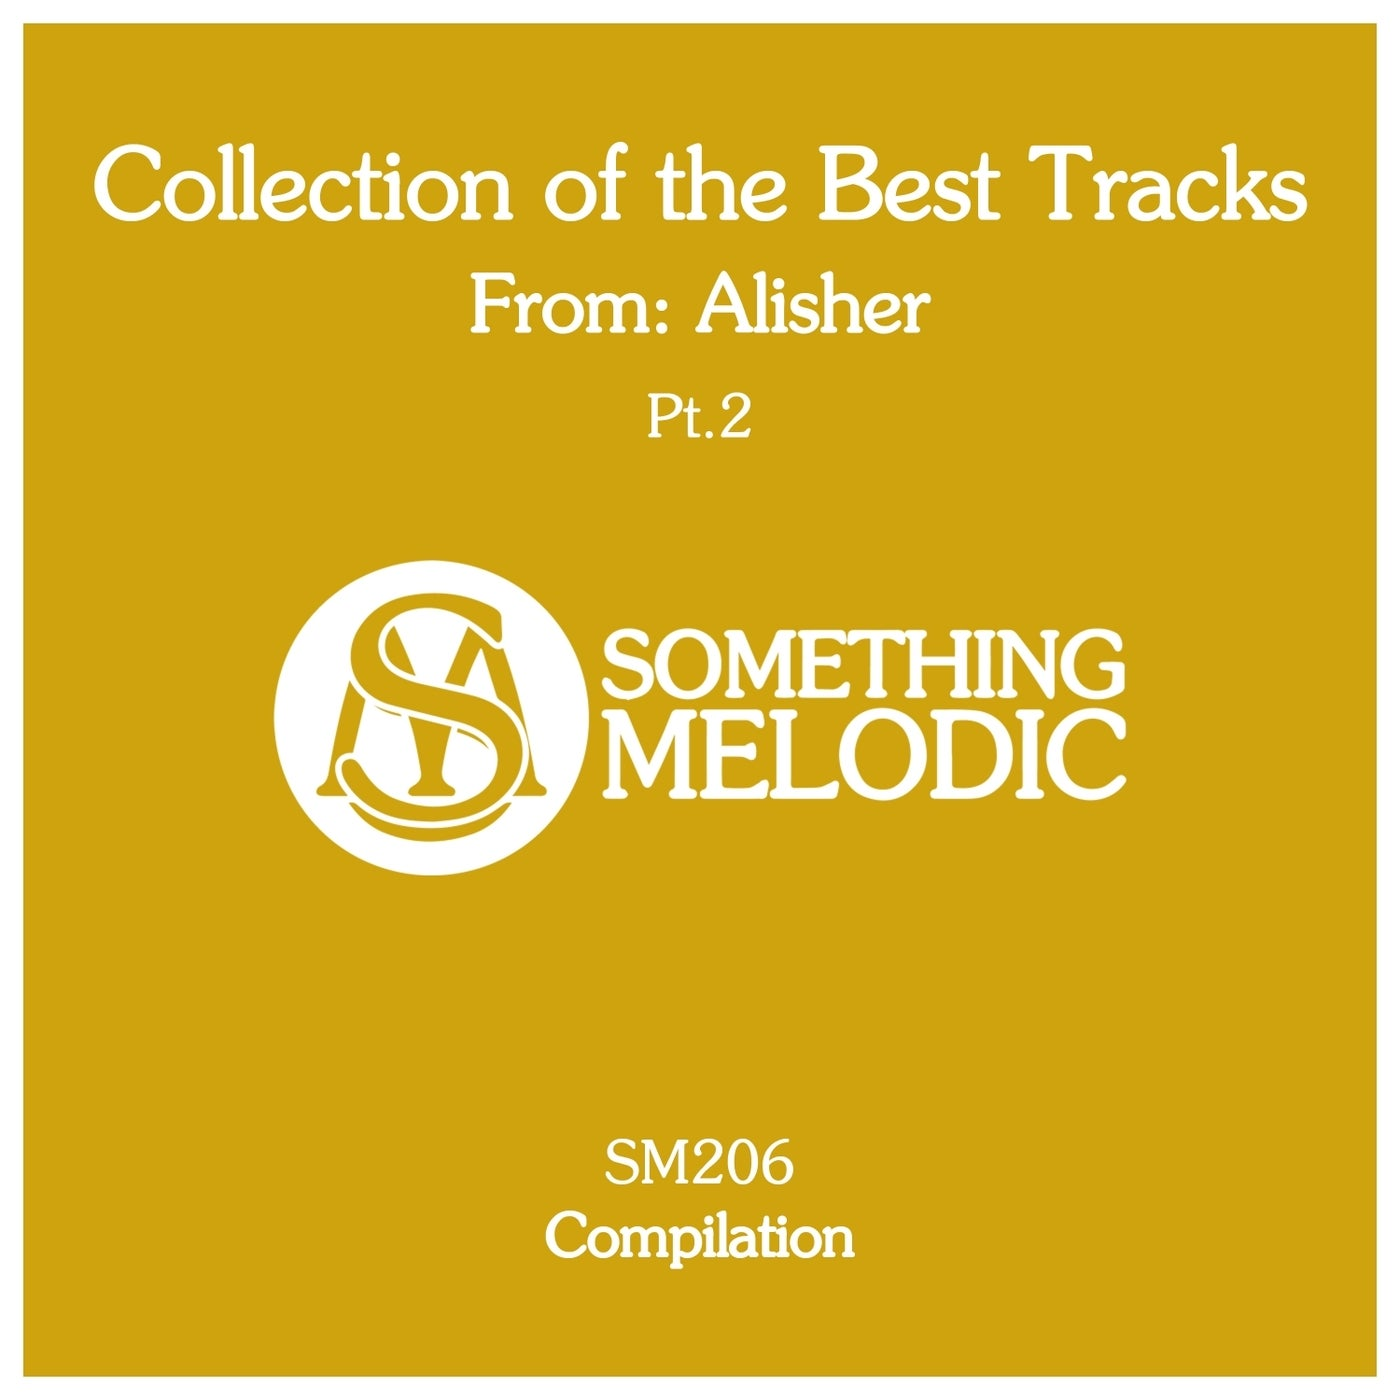 Alisher - Collection of the Best Tracks from  Alisher, Pt. 2 (2021)